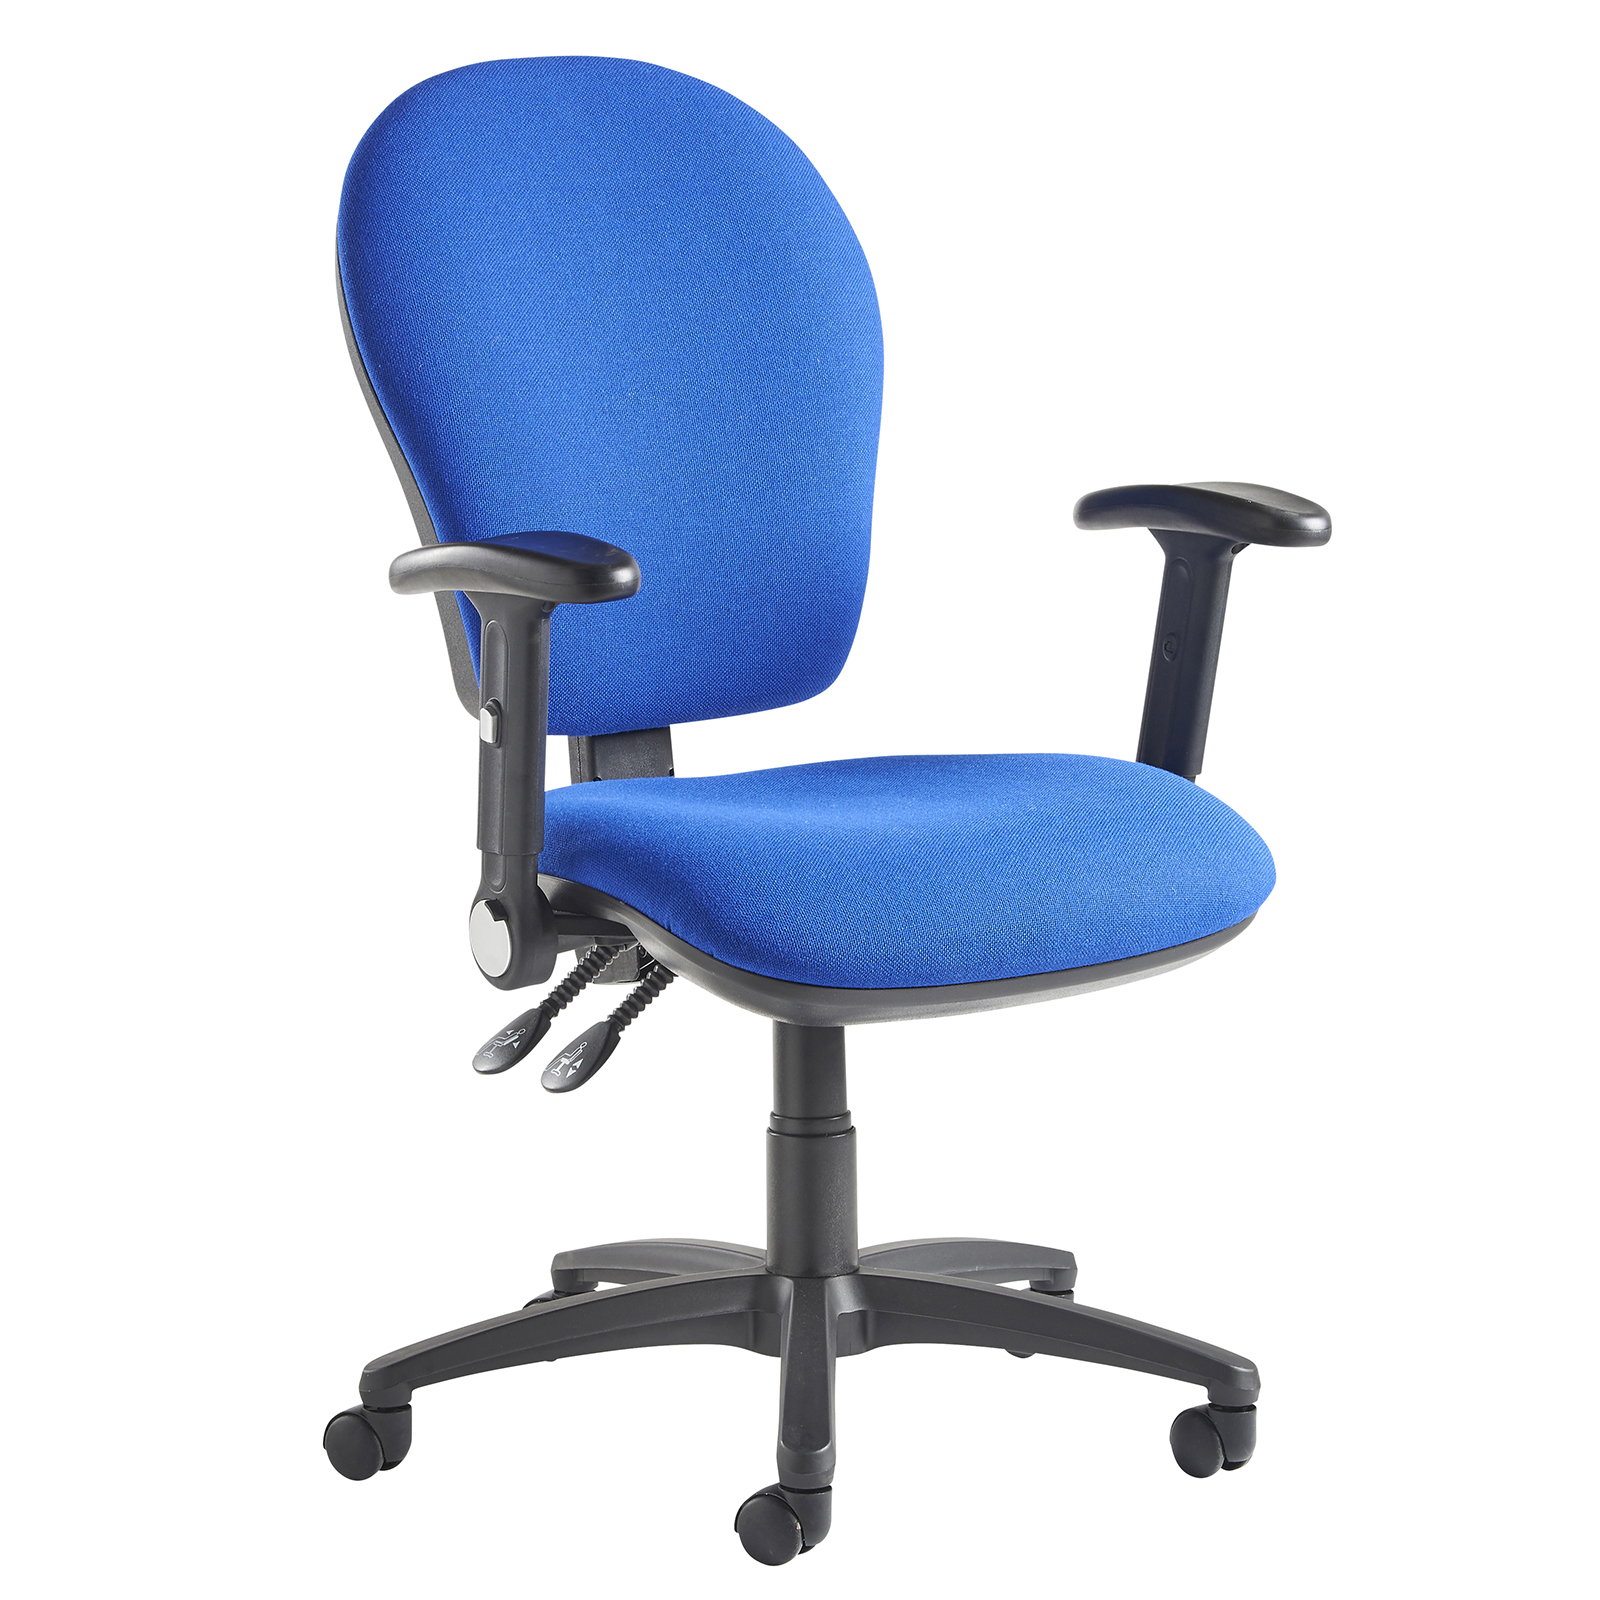 Lento high back operator chair with folding arms - blue